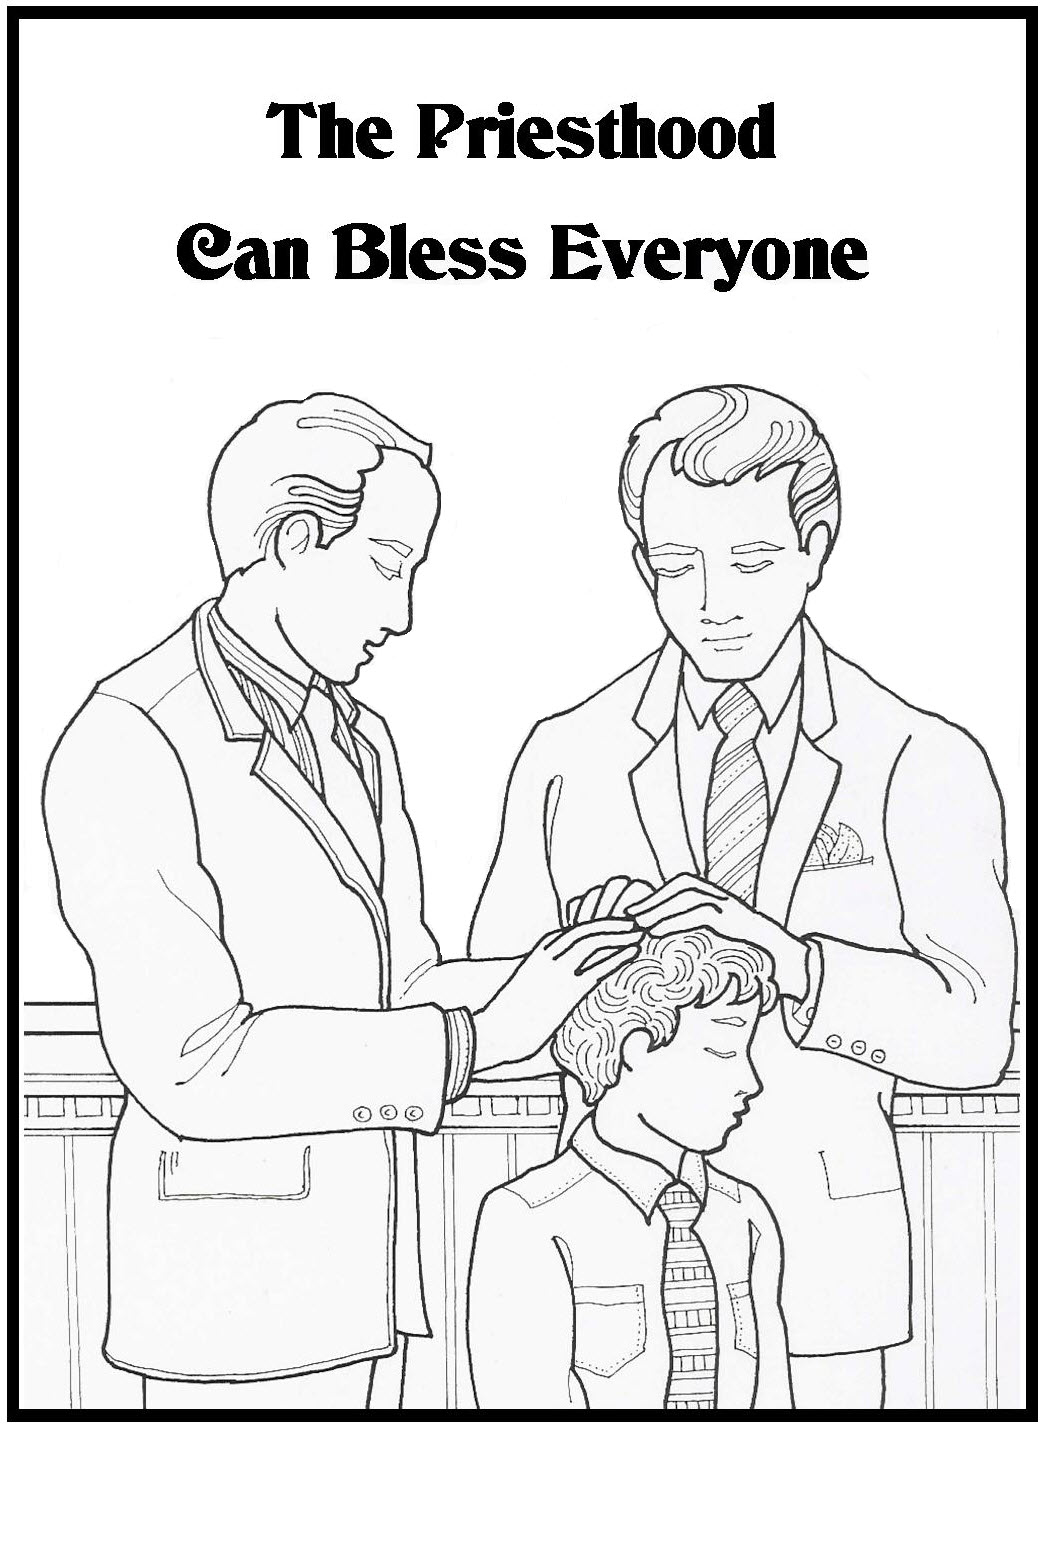 the priesthood can bless everyone coloring sheet